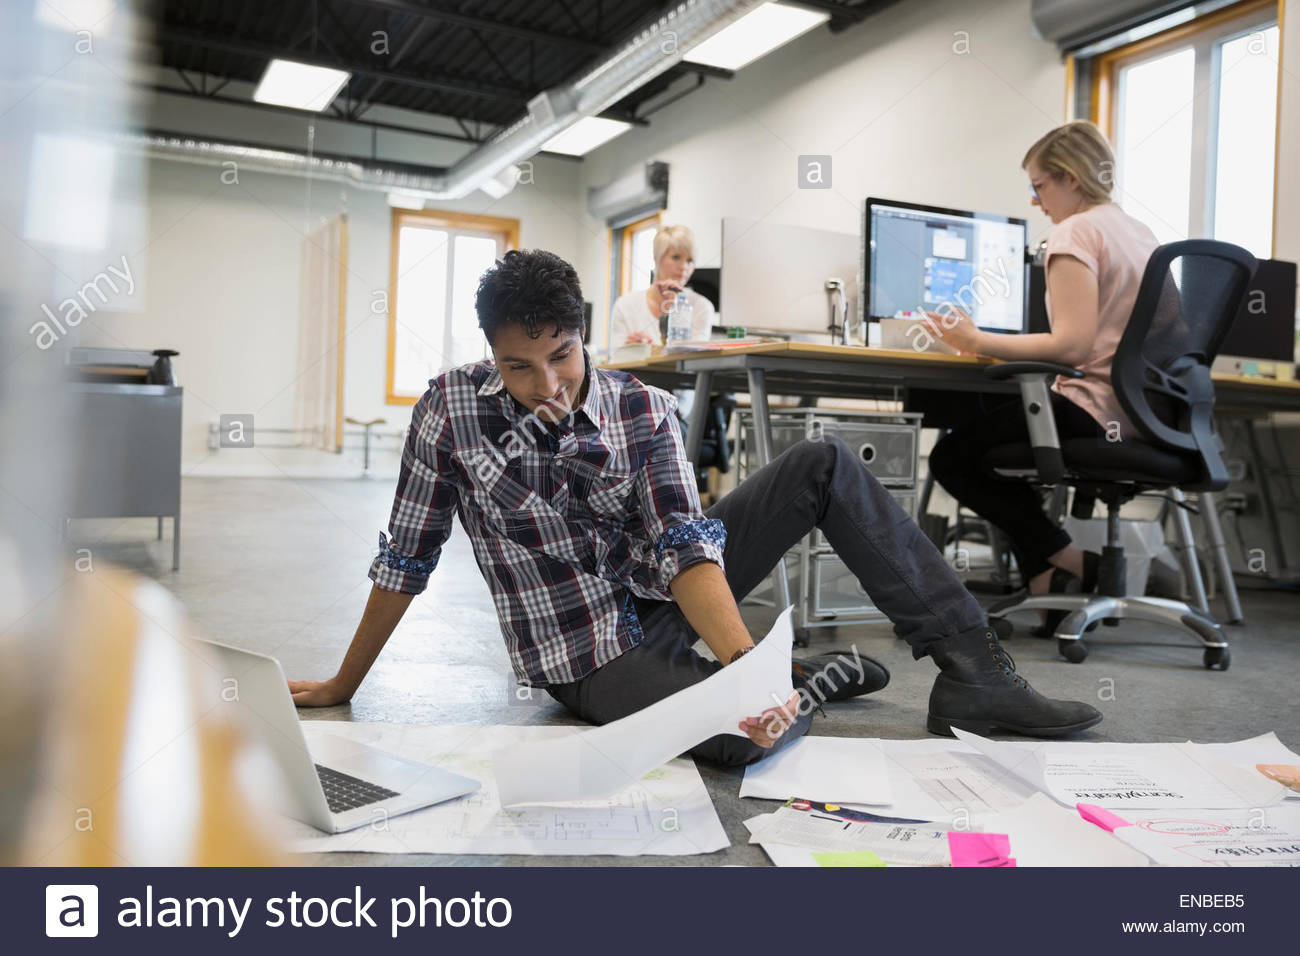 Graphic designer reviewing proofs on office floor - Stock Image